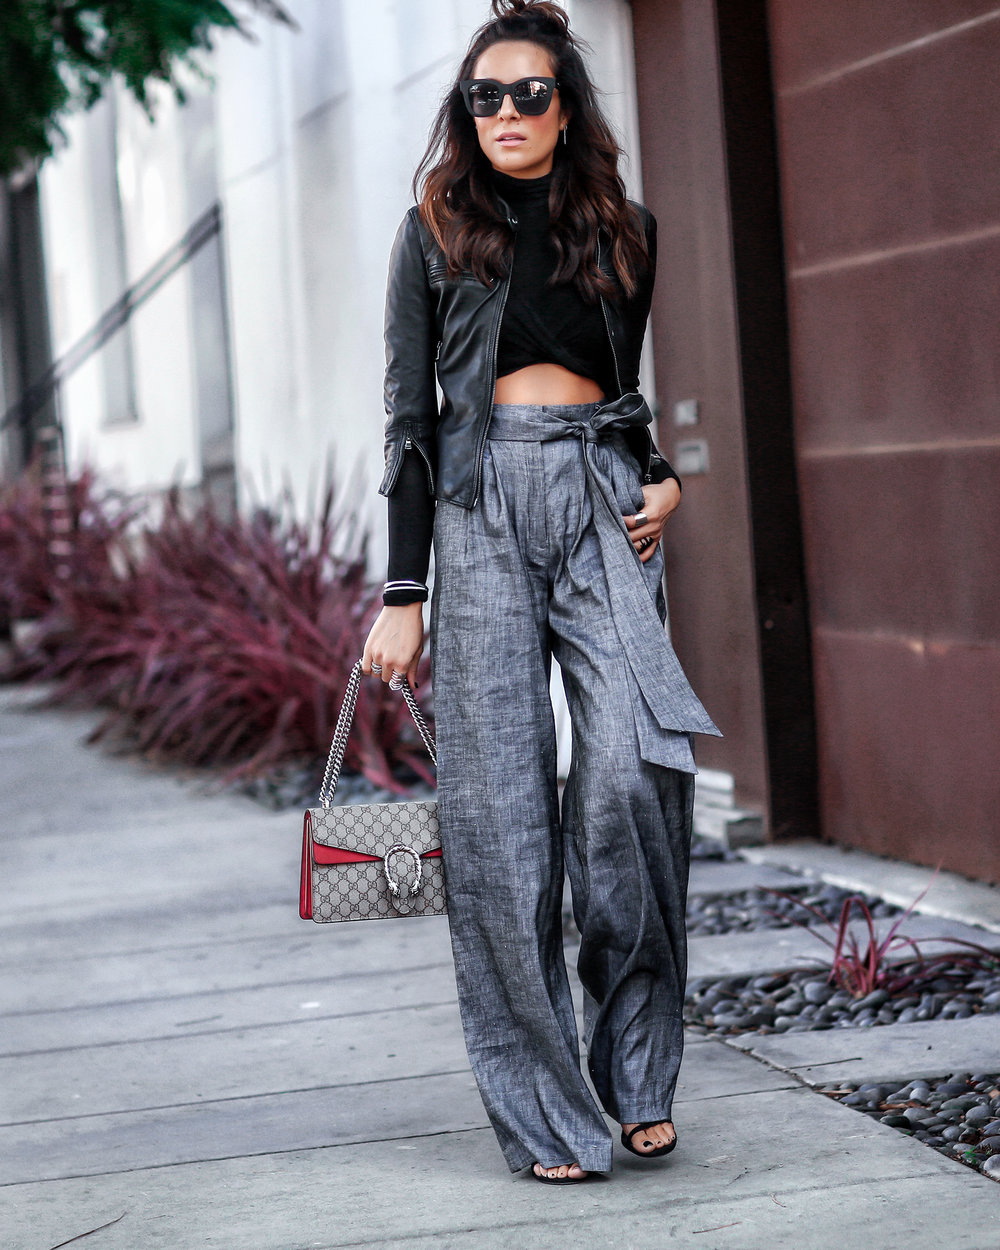 Brunette Woman in Crop Top and Wide Leg Pants Gucci Dionysus Bag